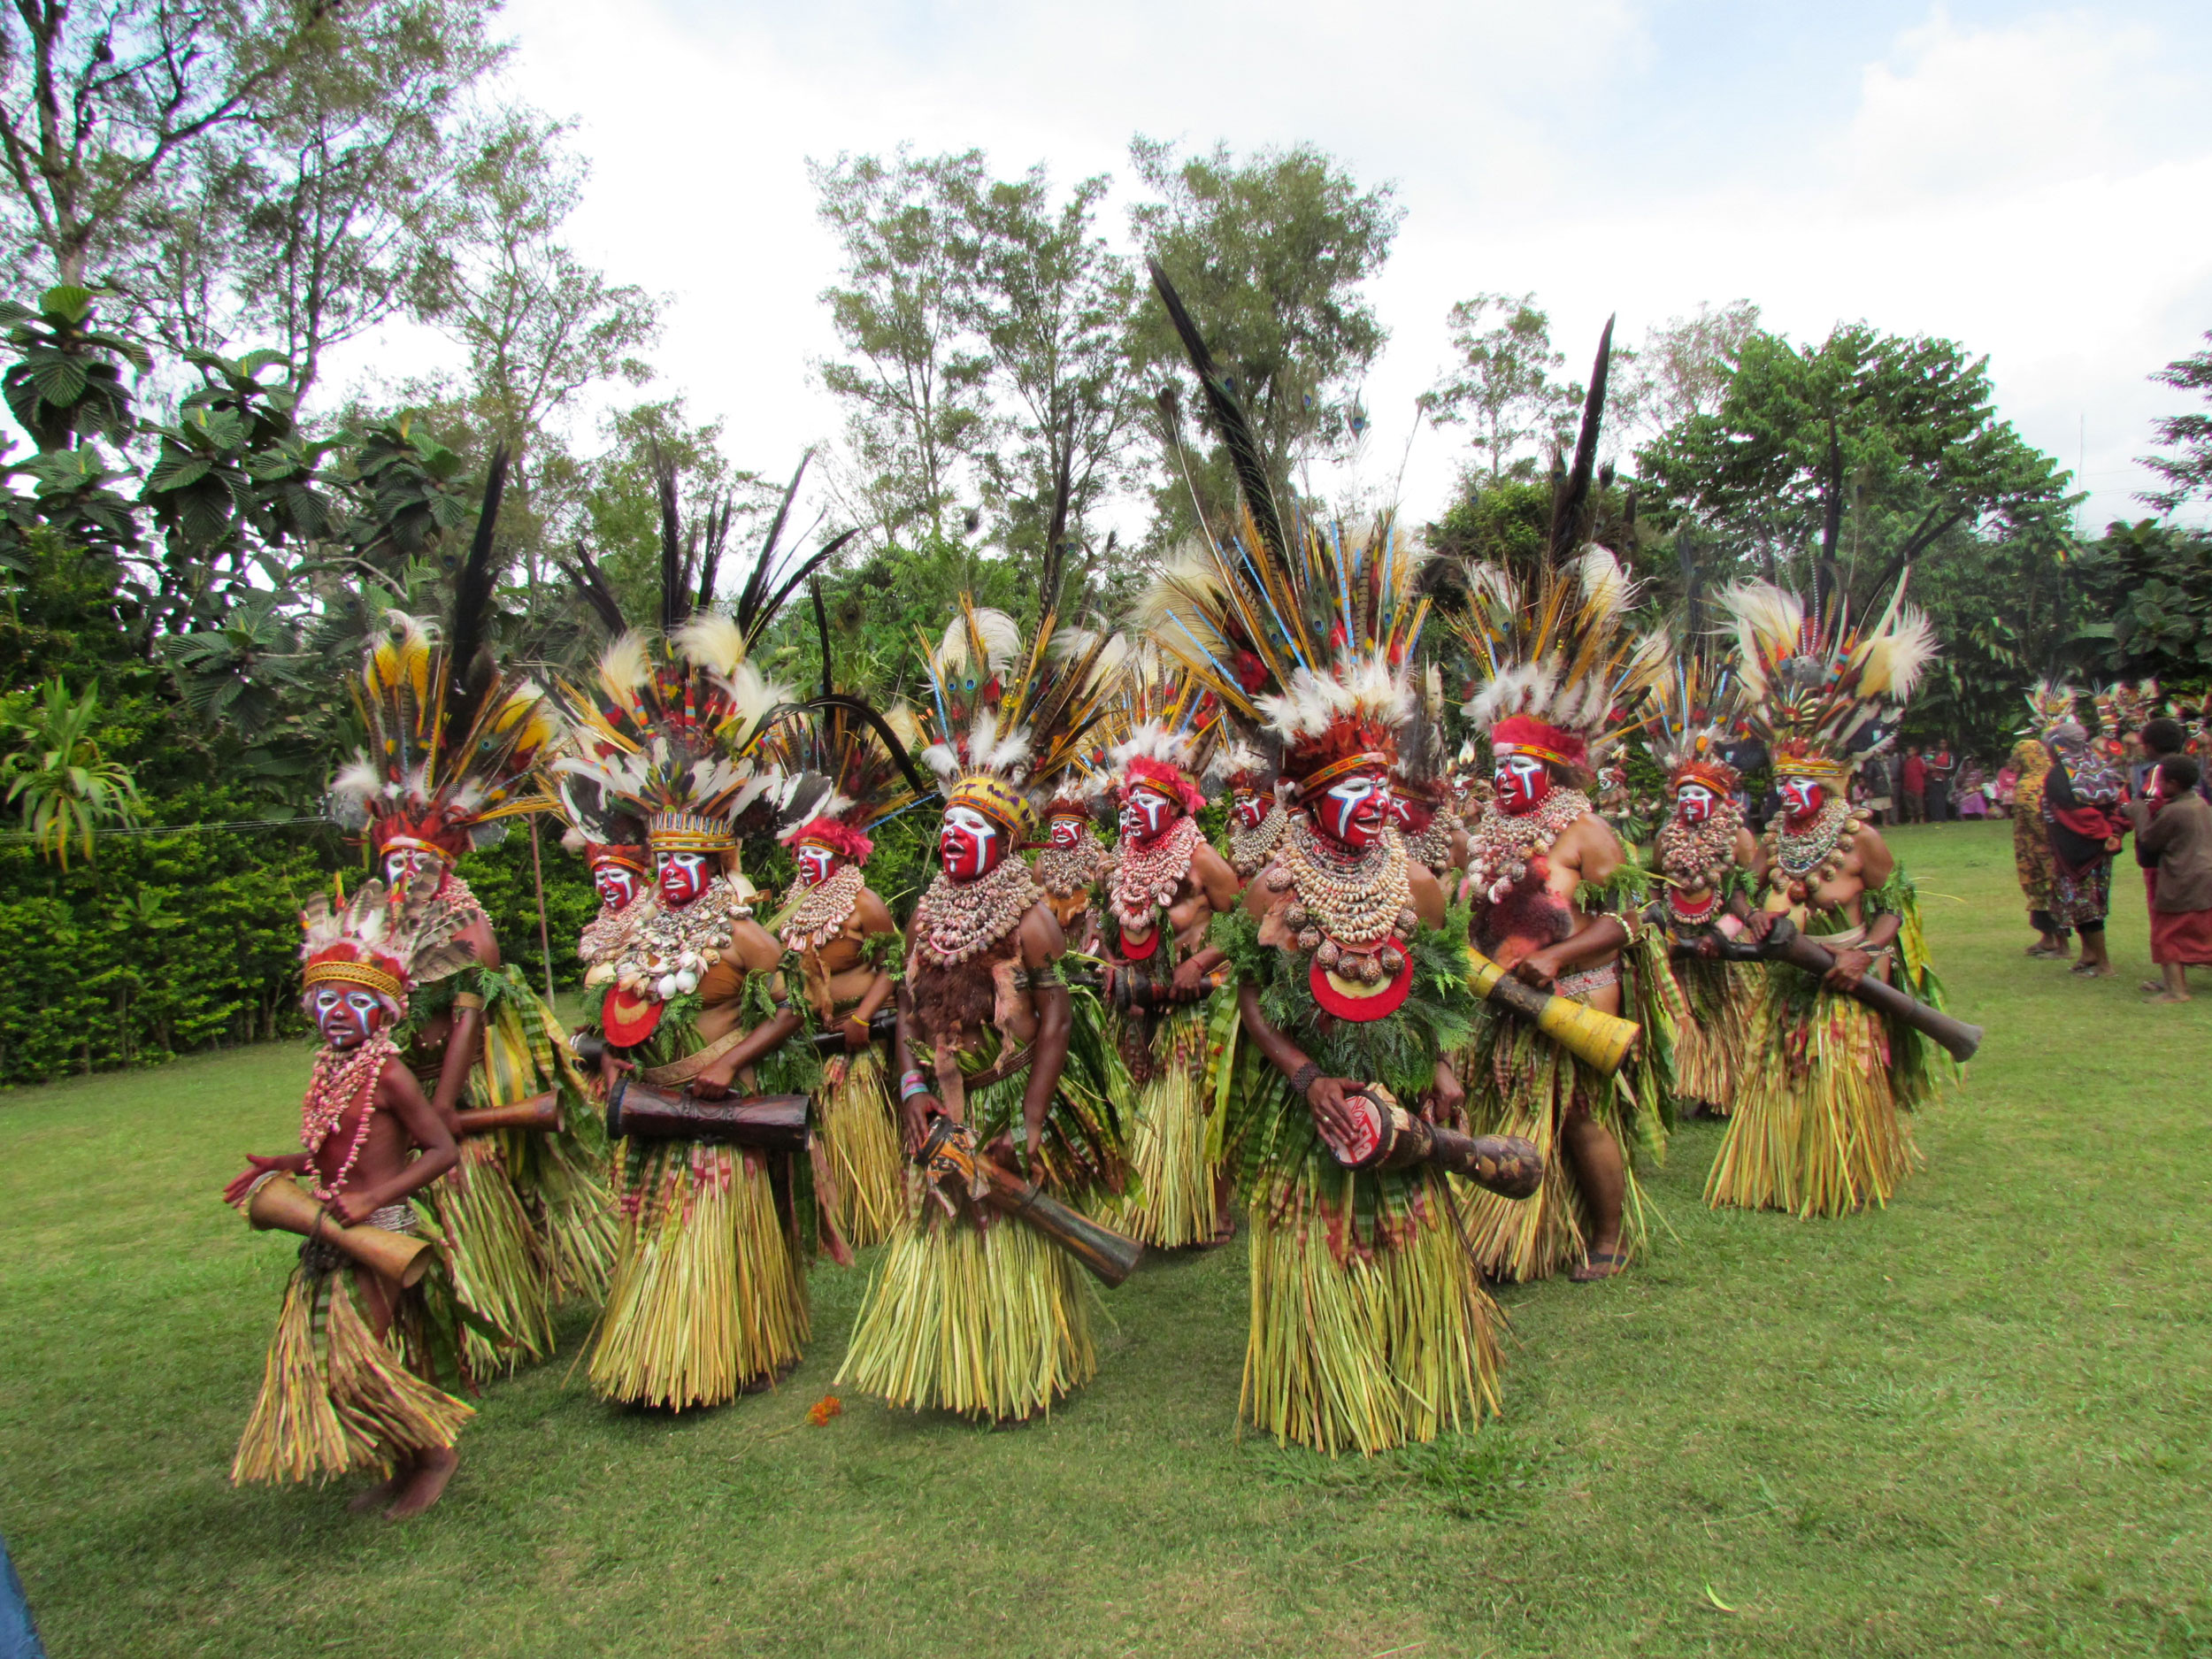 Dancers-mthagen in the beautiful and remote luxury yacht charter destination Papua New Guinea